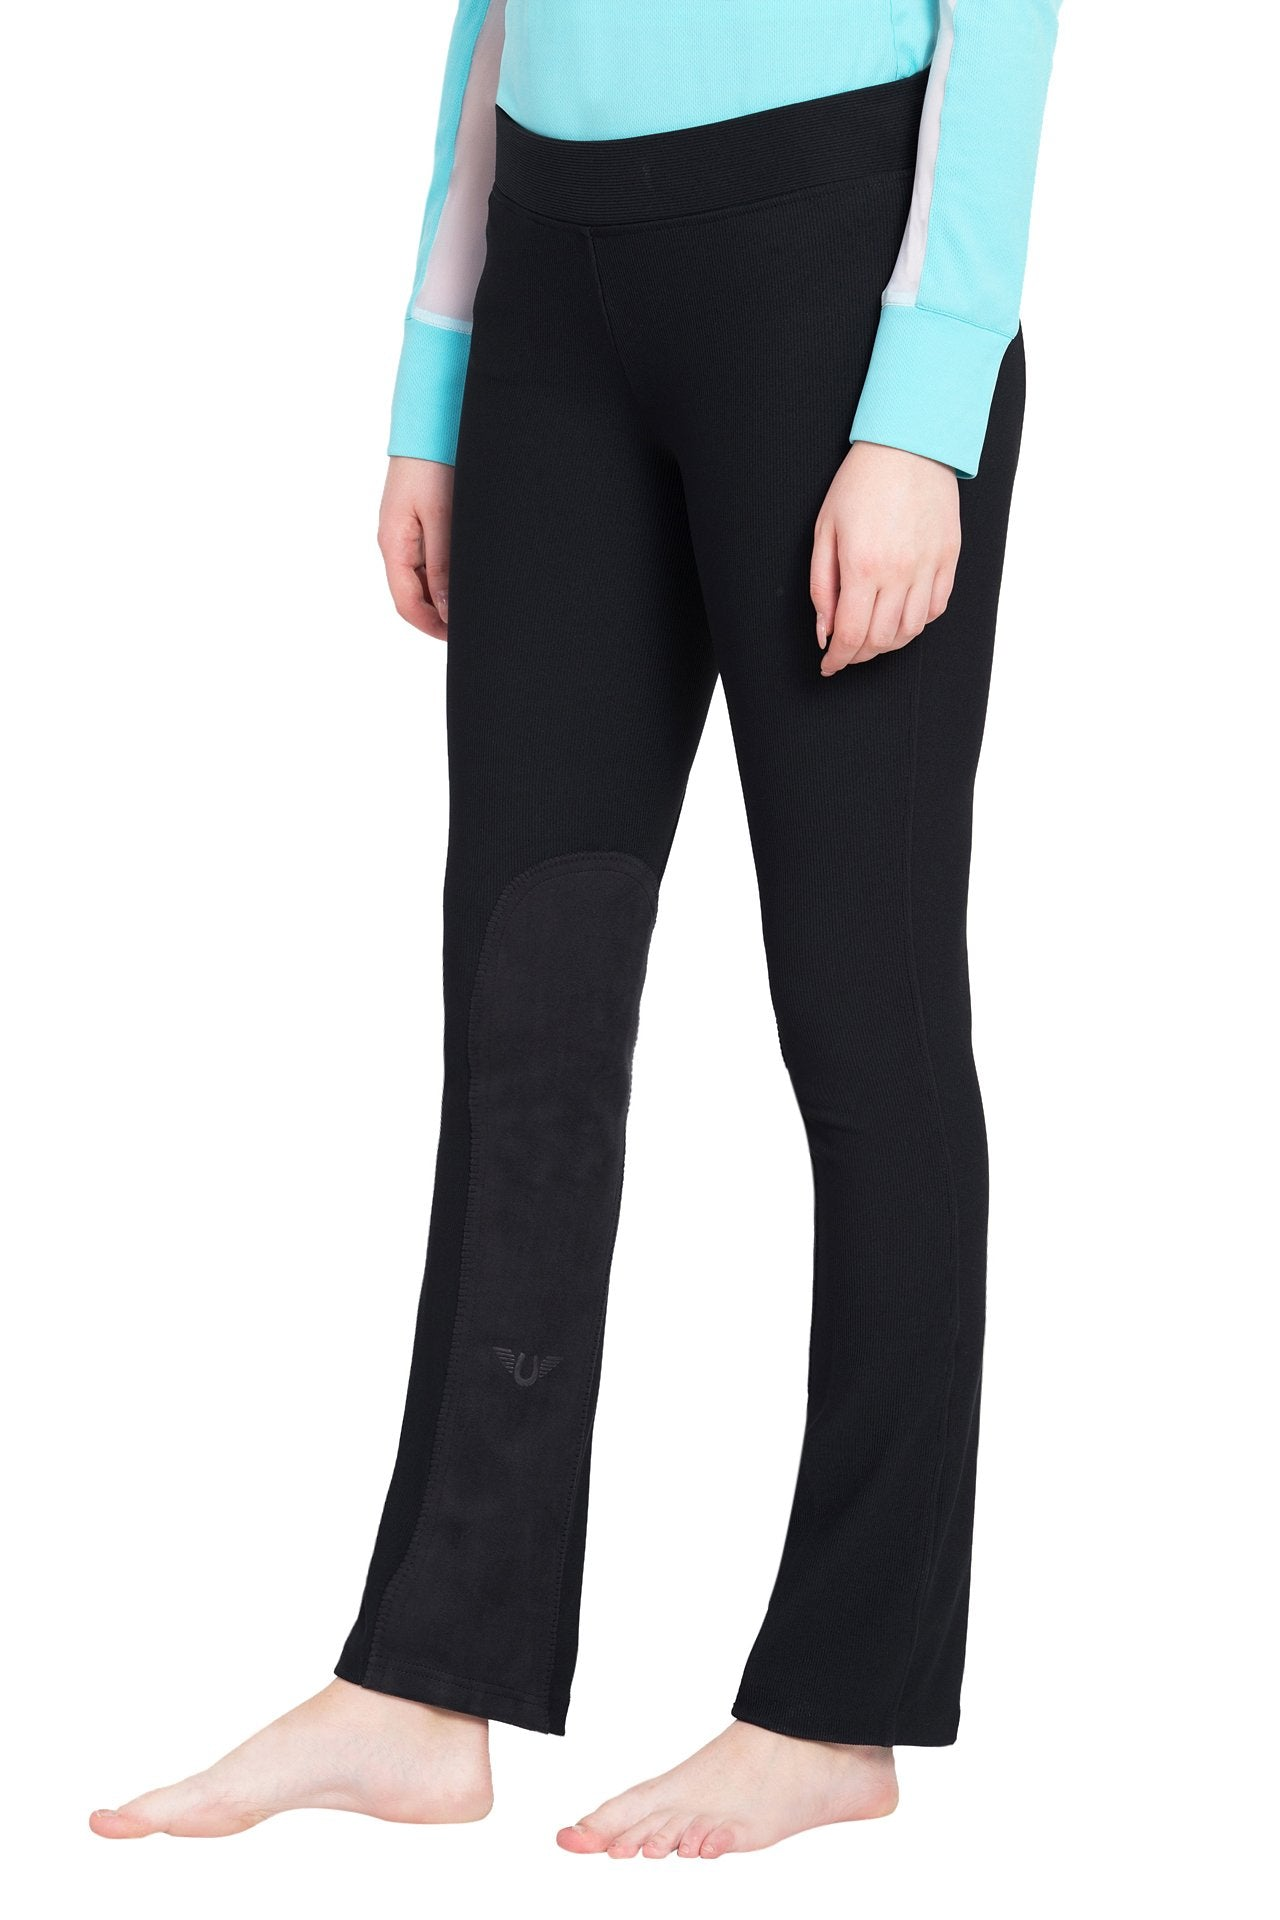 TuffRider Ladies Ribbed Boot Cut Riding Tights_1